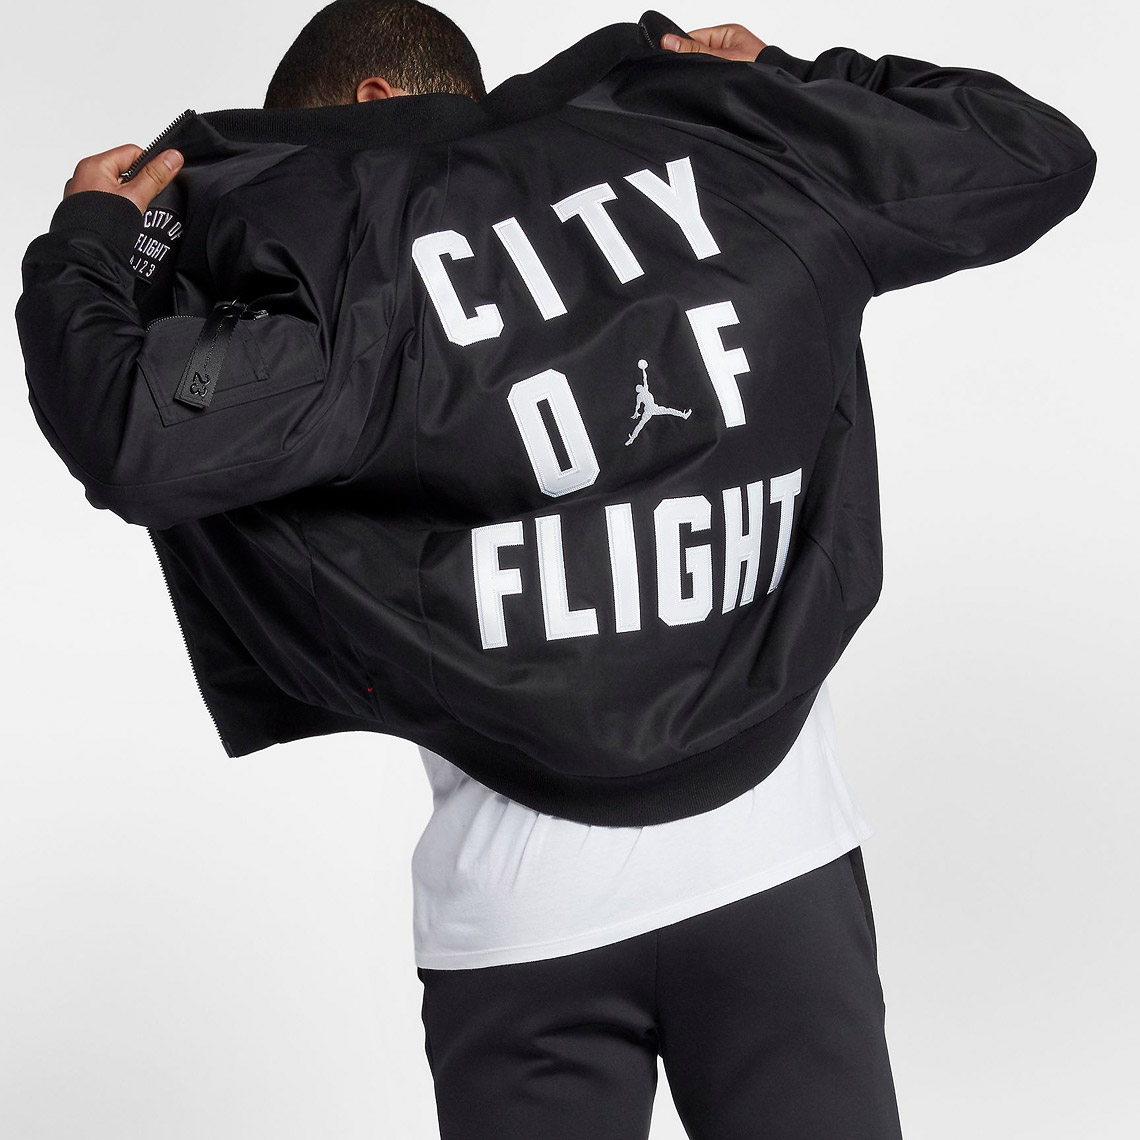 jordan-sportswear-city-of-flight-mens-jacket-3MOVYl